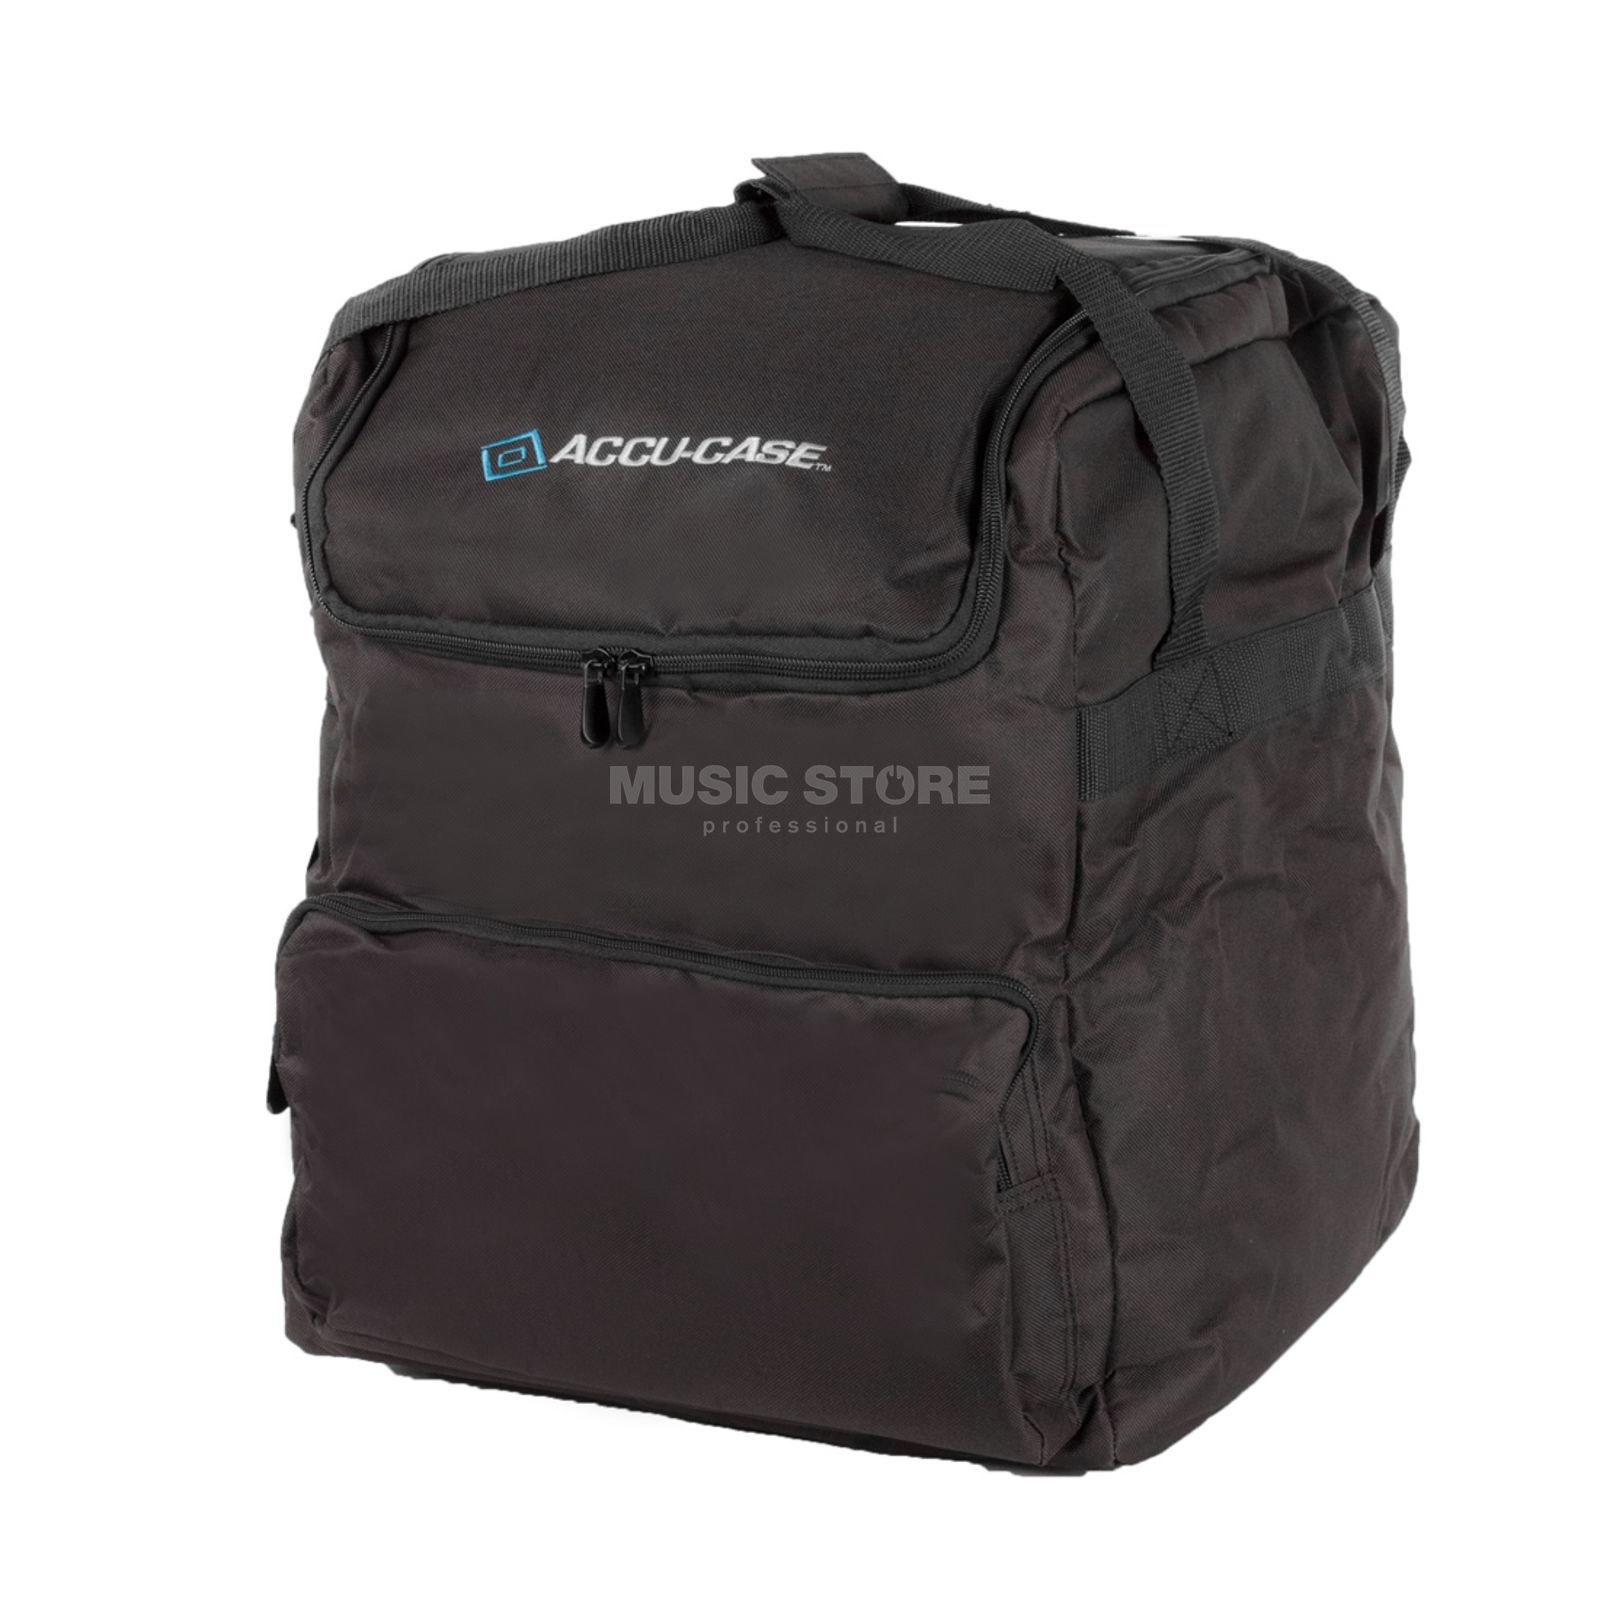 Accu Case ASC-AC-160 Transport Bag 370 x 340 x 430 mm Produktbillede